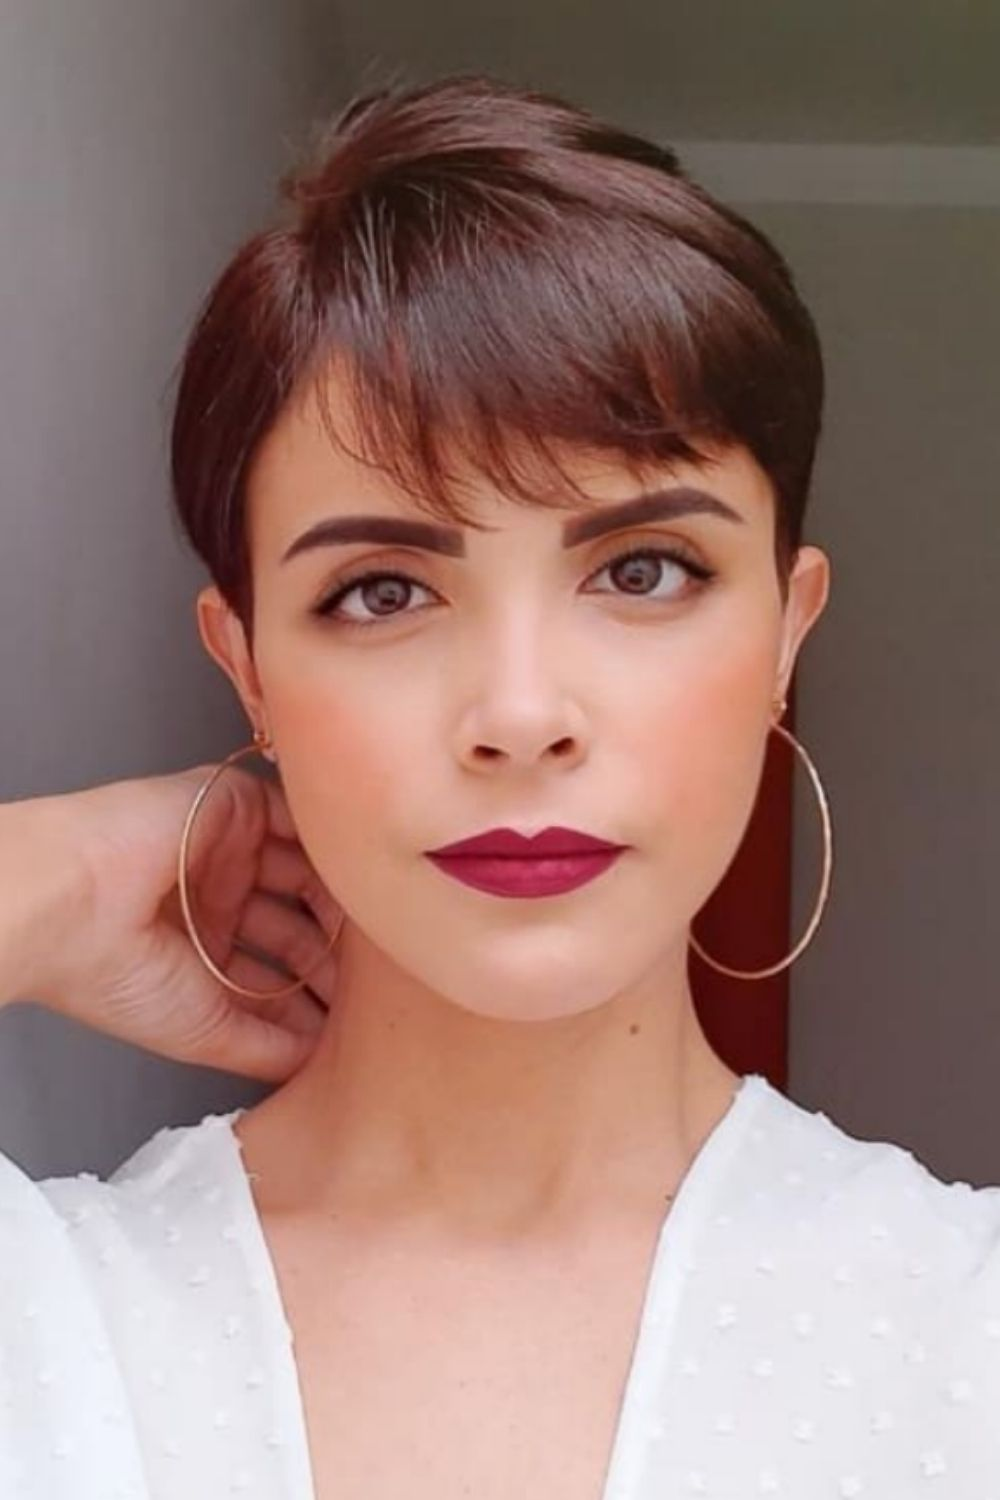 How to style very short pixie haircut for Cool girls 2021?